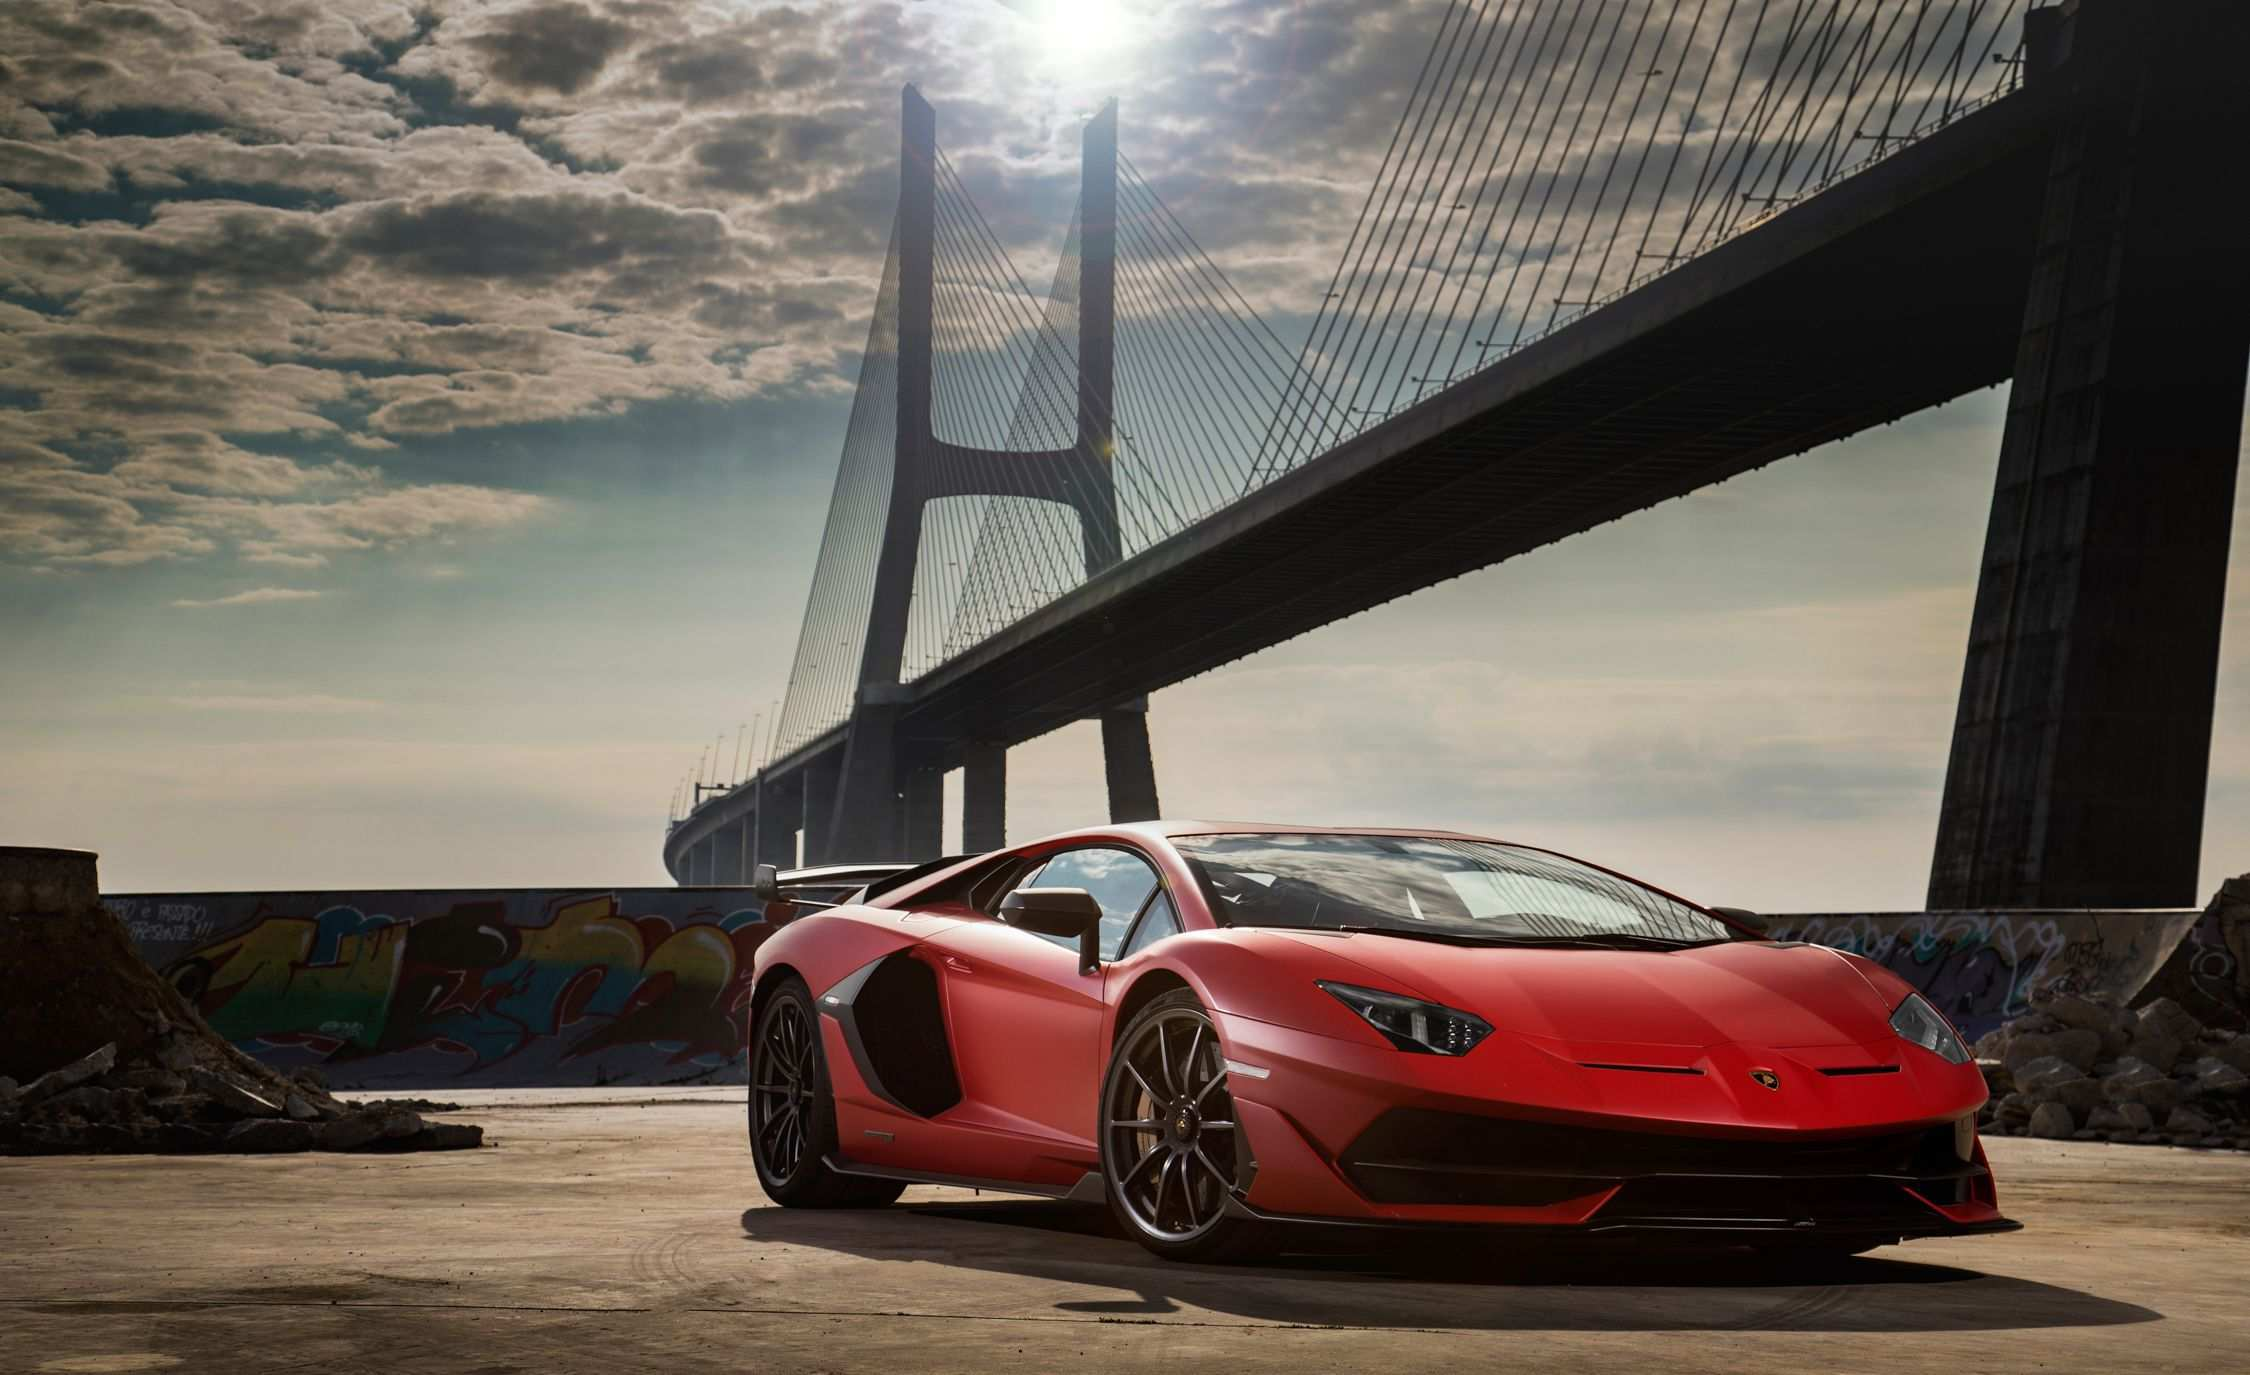 39 New 2020 Lamborghini Aventador Rumors with 2020 Lamborghini Aventador